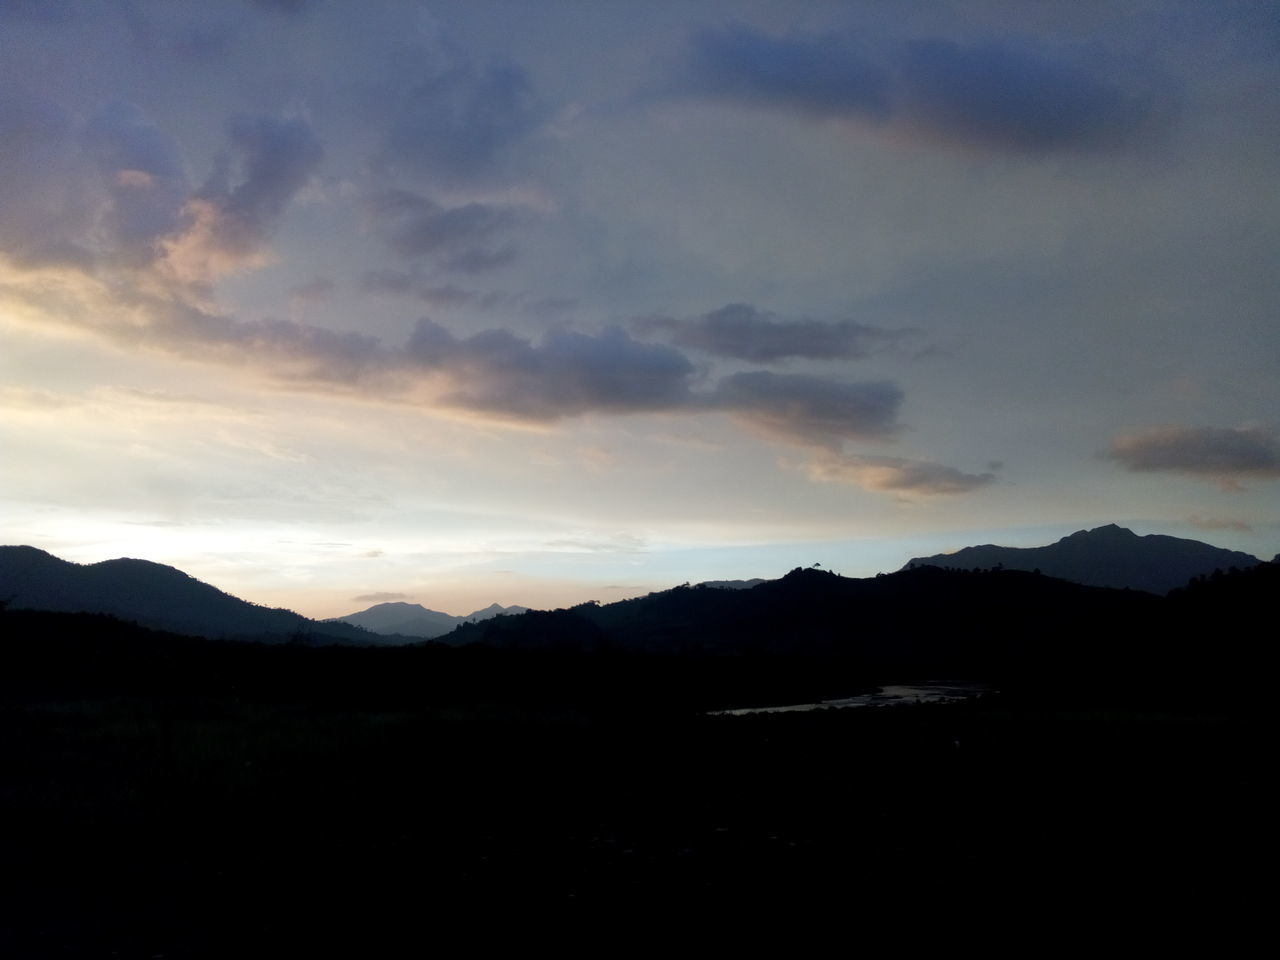 mountain, silhouette, beauty in nature, sunset, nature, tranquil scene, scenics, tranquility, no people, mountain range, landscape, sky, outdoors, day, range